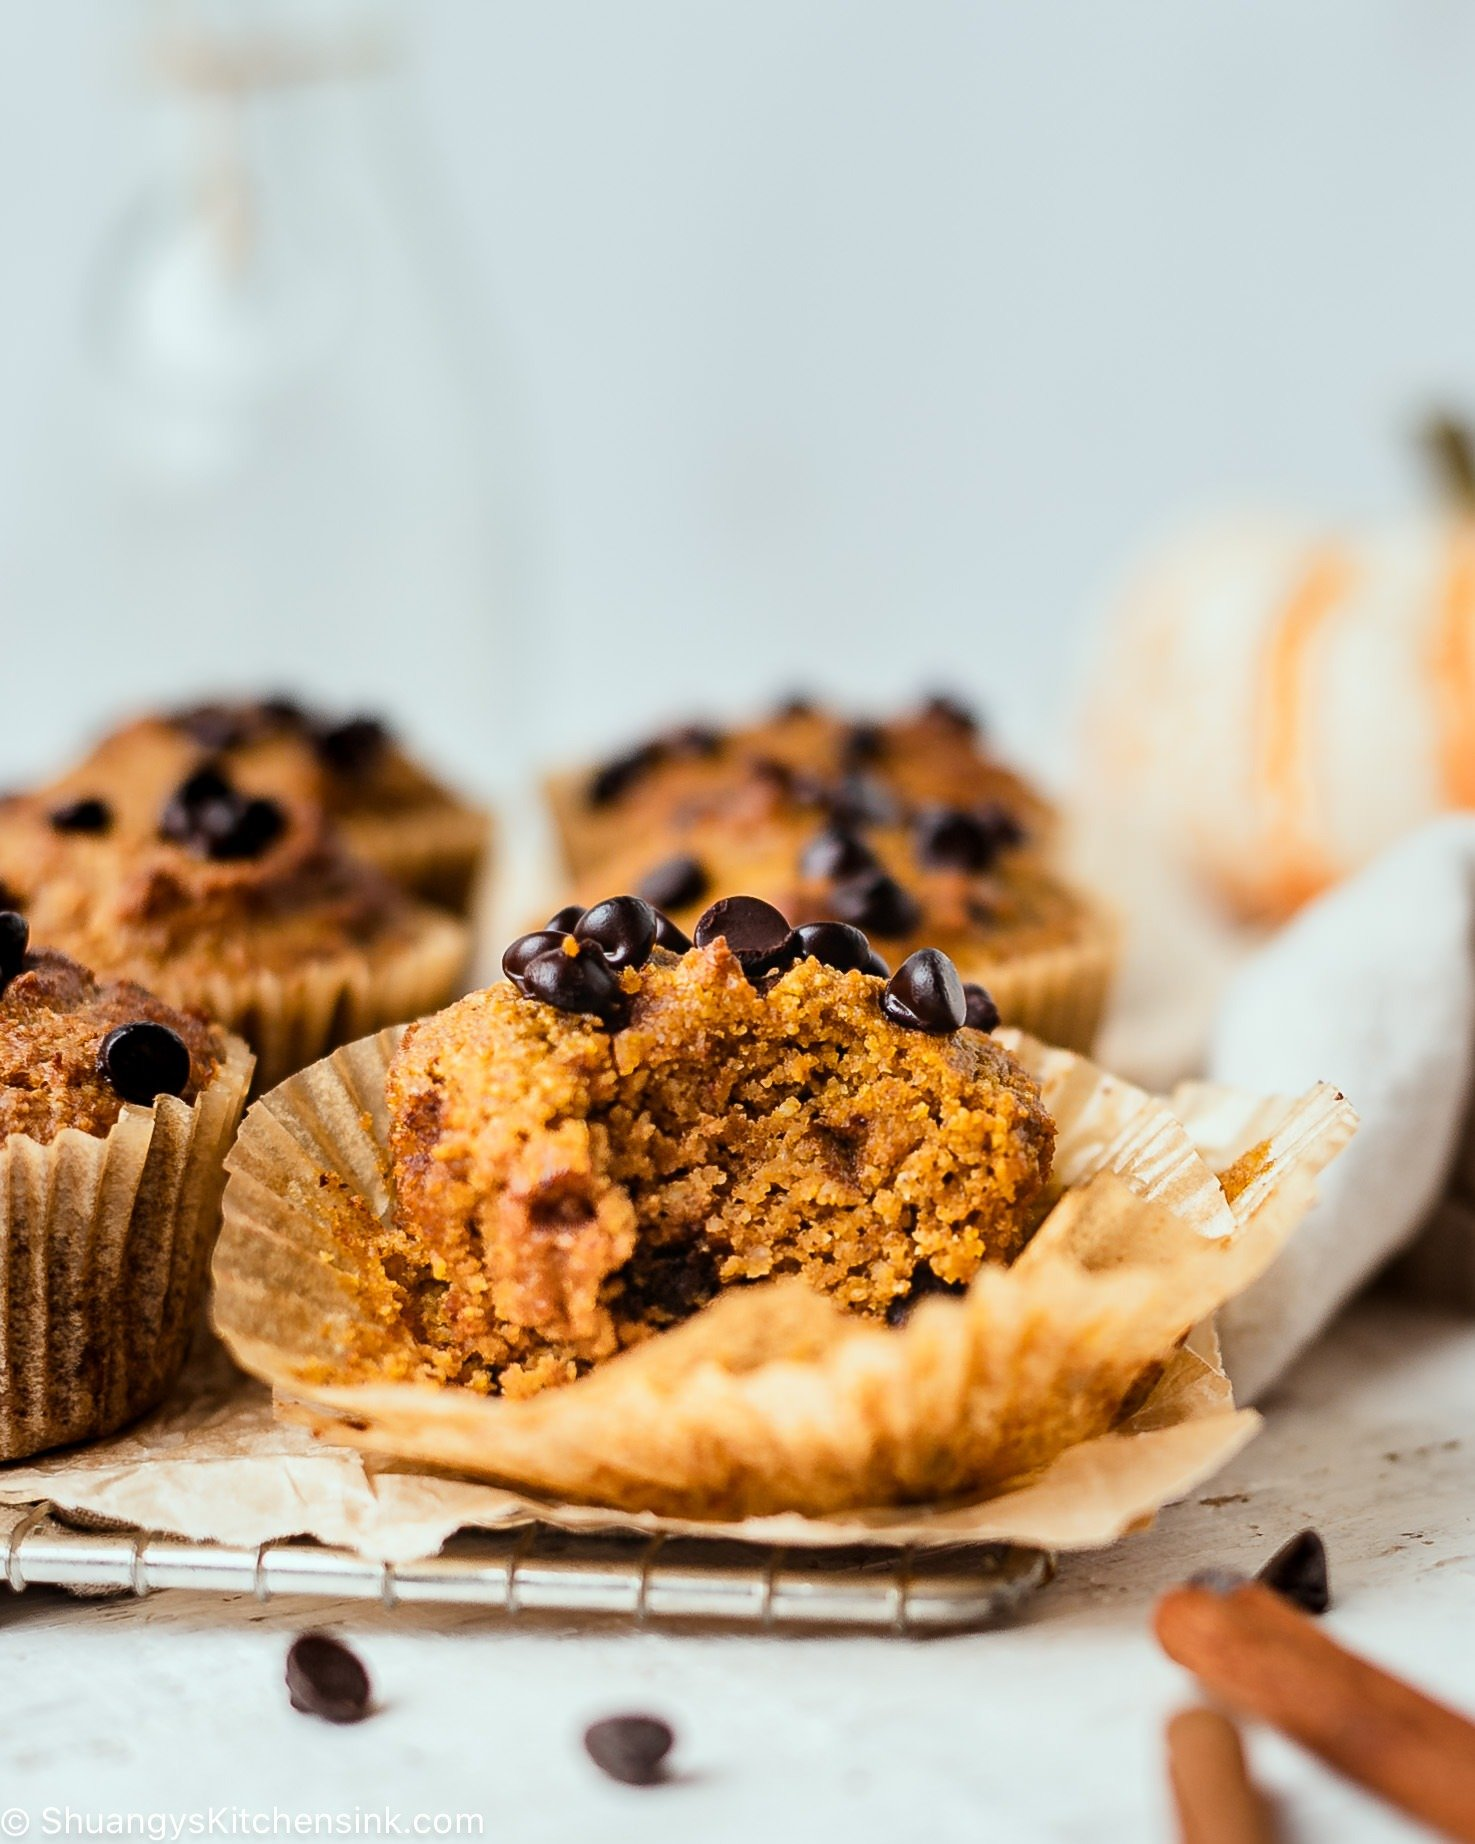 There is a pumpkin chocolate chip muffins with a bite taken from it. It looks soft and moist and the pumpkin muffin is paleo and gluten-free and topped with vegan chocolate chips